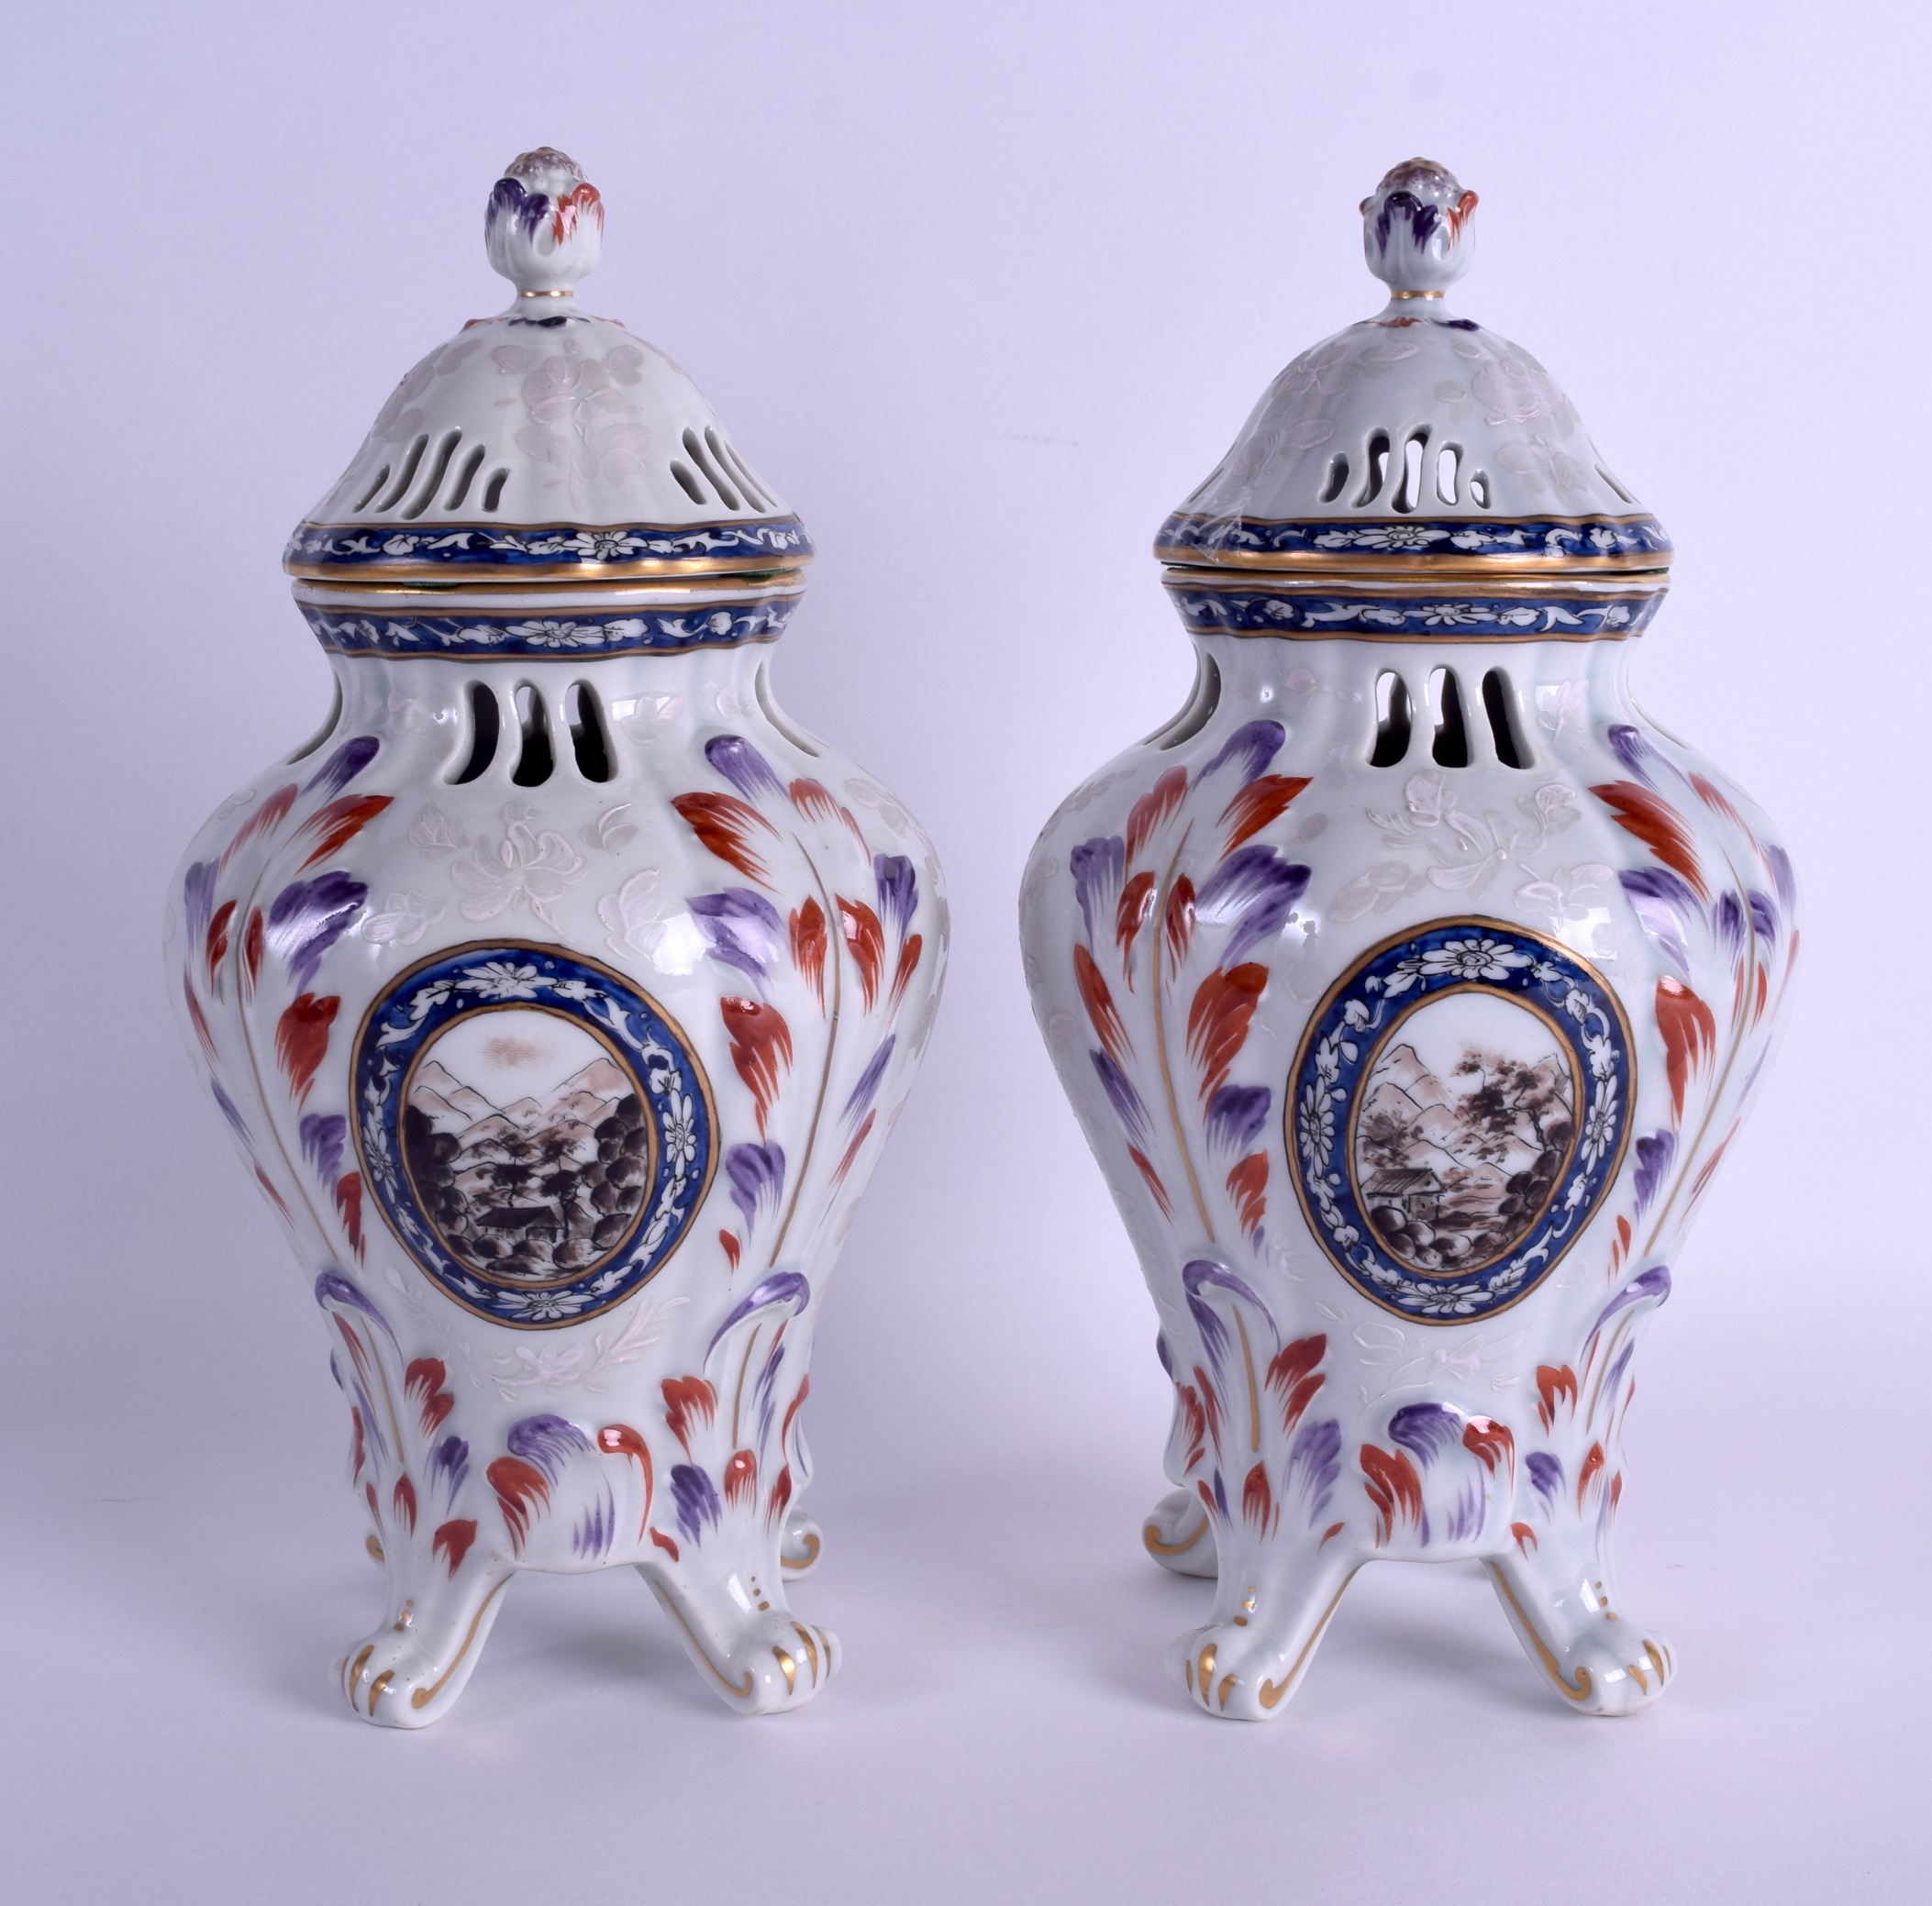 Lot 82 - A PAIR OF 19TH CENTURY FRENCH SAMSONS OF PARIS PORCELAIN VASES AND COVERS painted with landscapes.